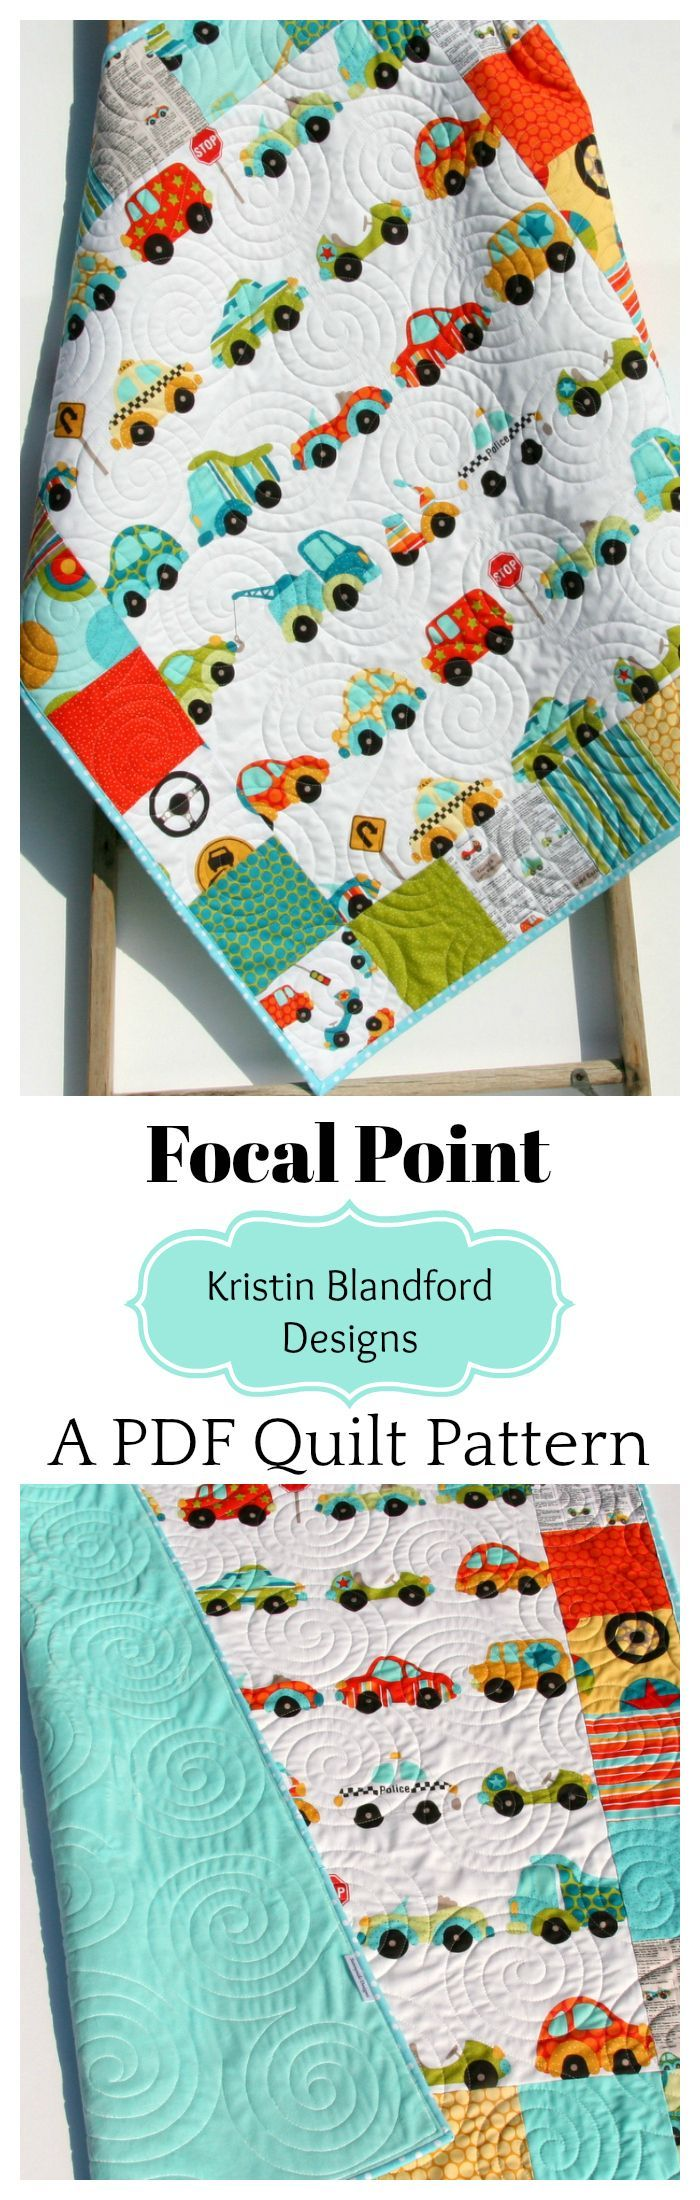 Focal Point Baby Quilt Pattern, Beginner Quilt Pattern, Baby Quilt Pattern, Patchwork Around Focal Fabrics, Designer Fabrics, Modern Quilt Pattern, Quilting Sewing Ideas, Crafts Crafting diy, Cars Truck Vehicles Boy Quilts, Simple Quick Easy Quilt Pattern by Kristin Blandford Designs #quiltpattern #beginnerquiltpattern #babyquiltpattern